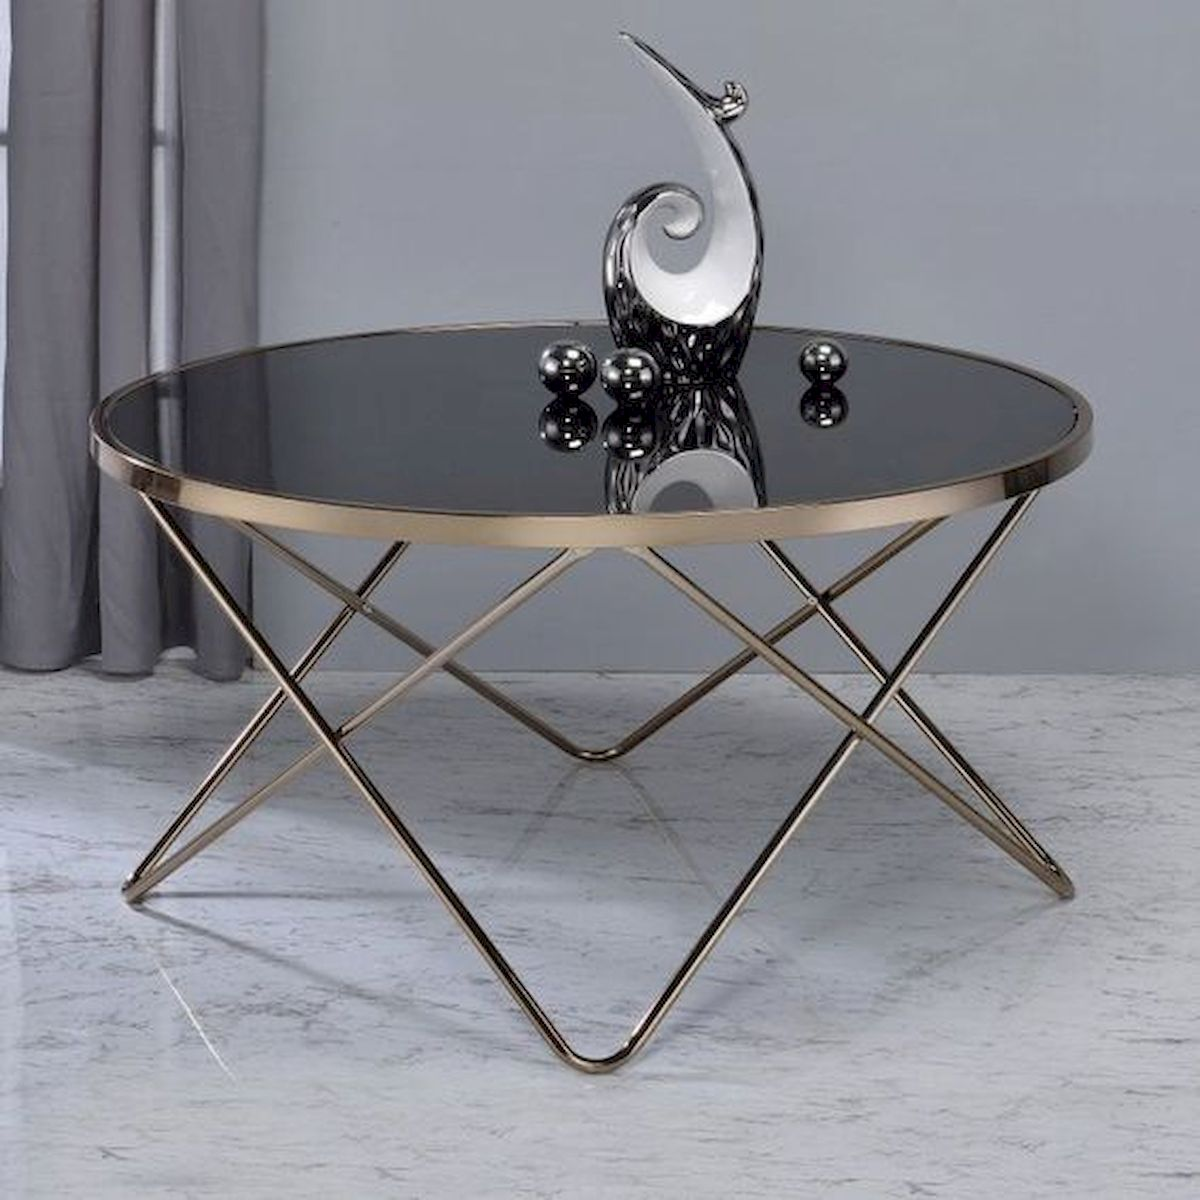 40 Awesome Modern Glass Coffee Table Design Ideas For Your Living Room (14)